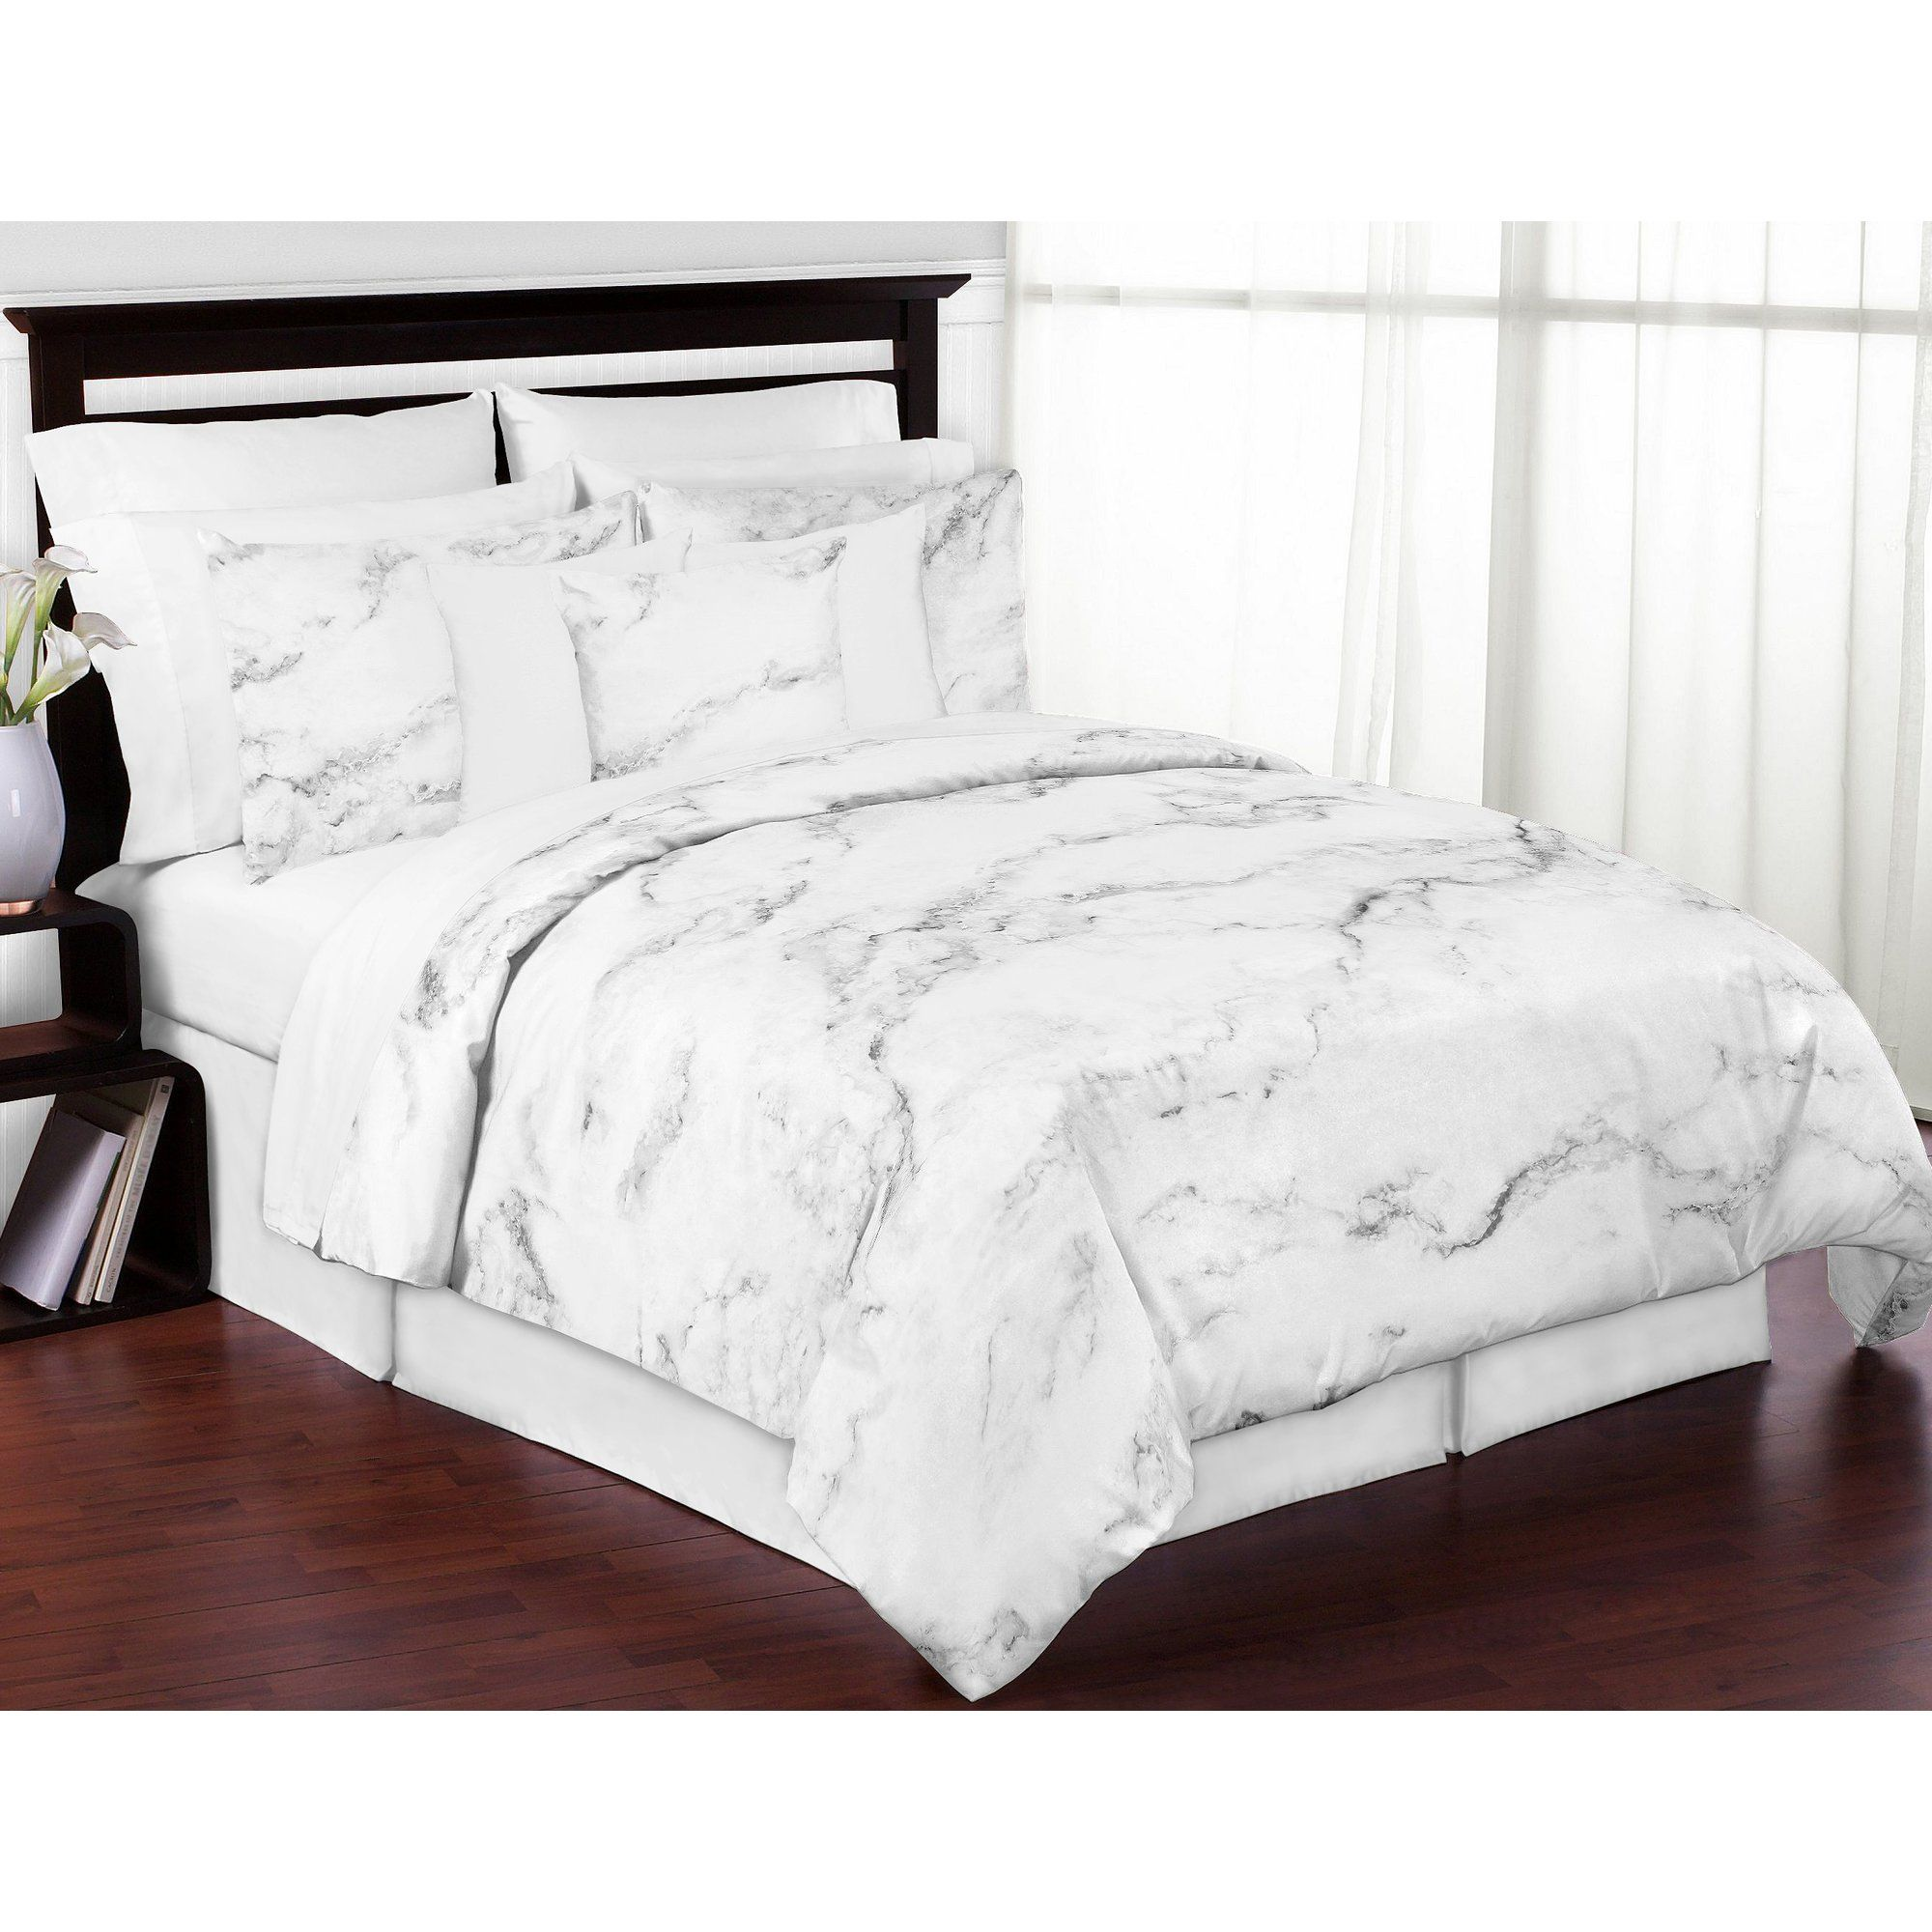 Marble Comforter Set With Images Queen Bedding Sets Marble Bedding Bed Linens Luxury